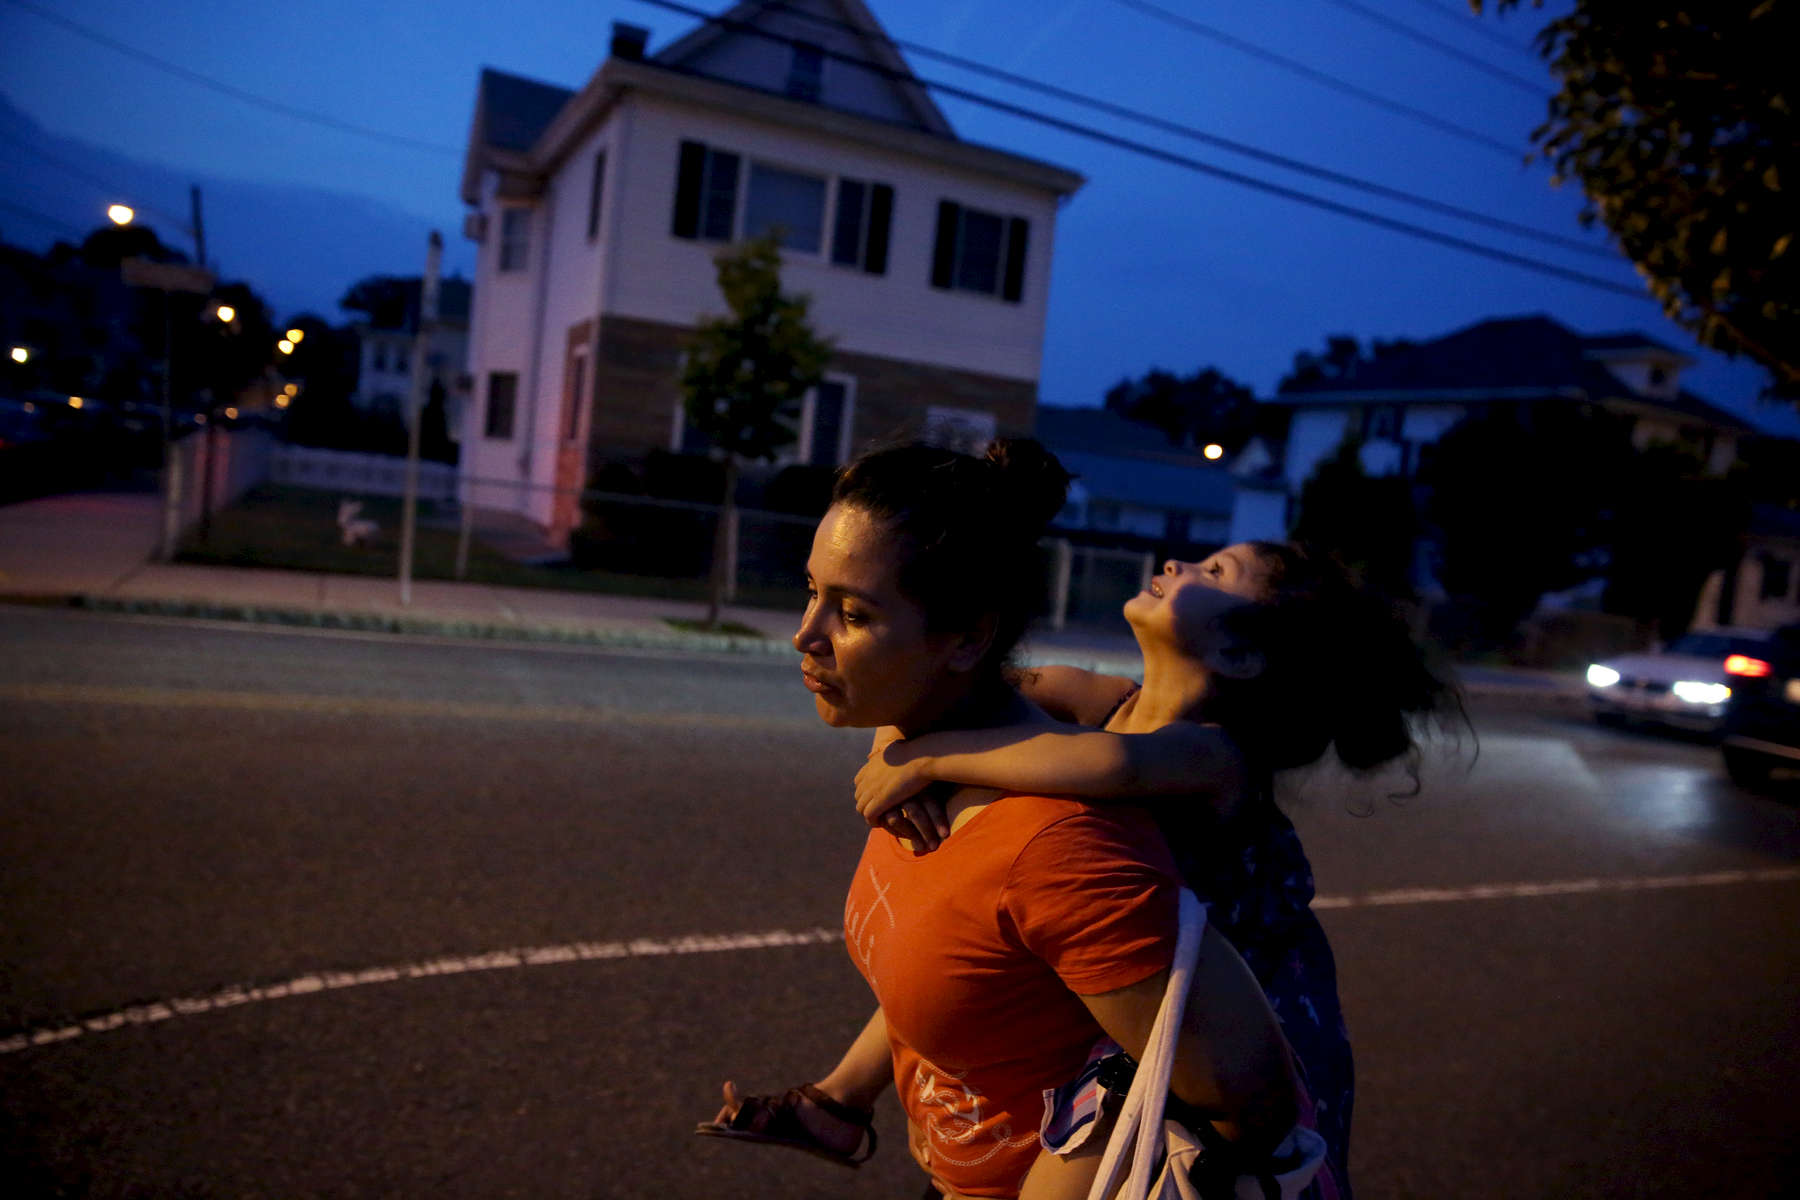 Revere, MA--7/27/2018--  As the end of the day draws near Patricia carries Camila up the street that leads from the park back to their apartment. A single mother who works full time almost all of her free time is devoted to her daughter. She wonders what might happen if she were deported? What would their life look like in Honduras? Where would they live and what would she do for a job?